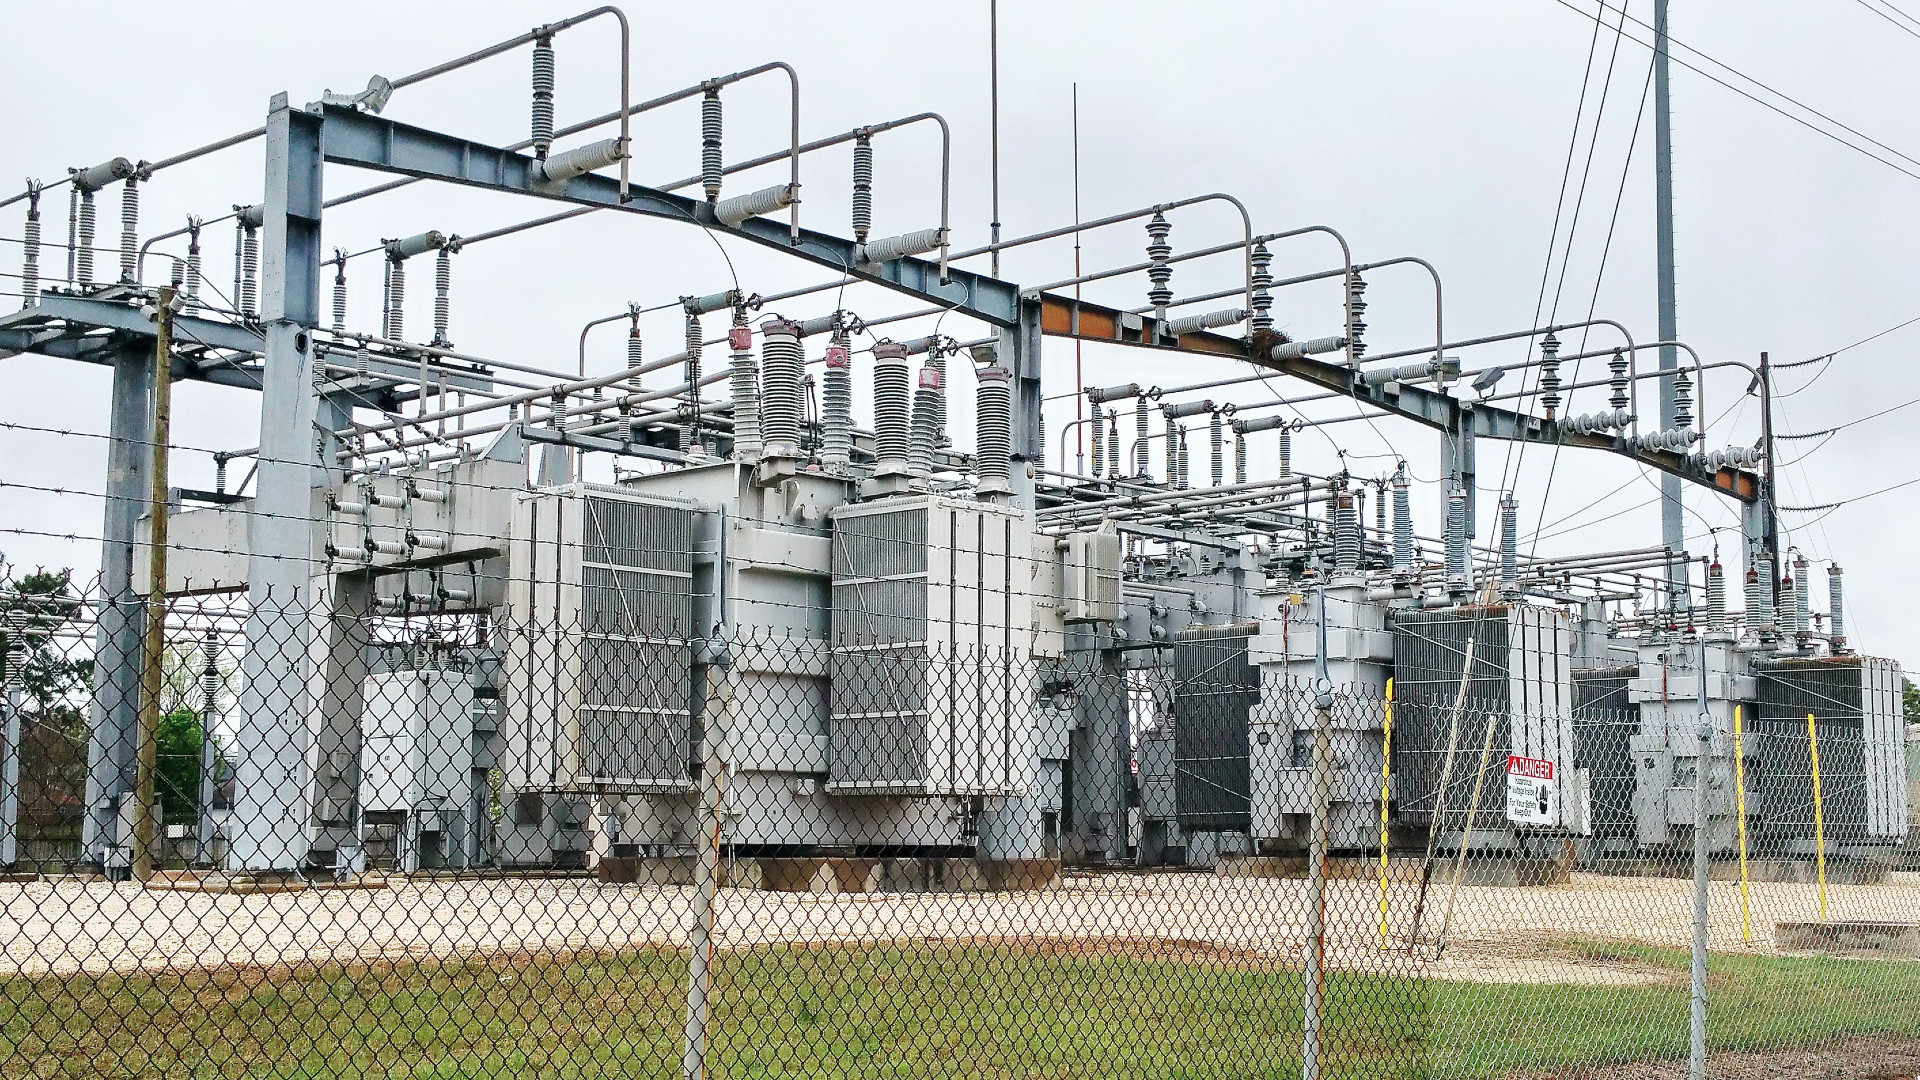 Texas Power Substation